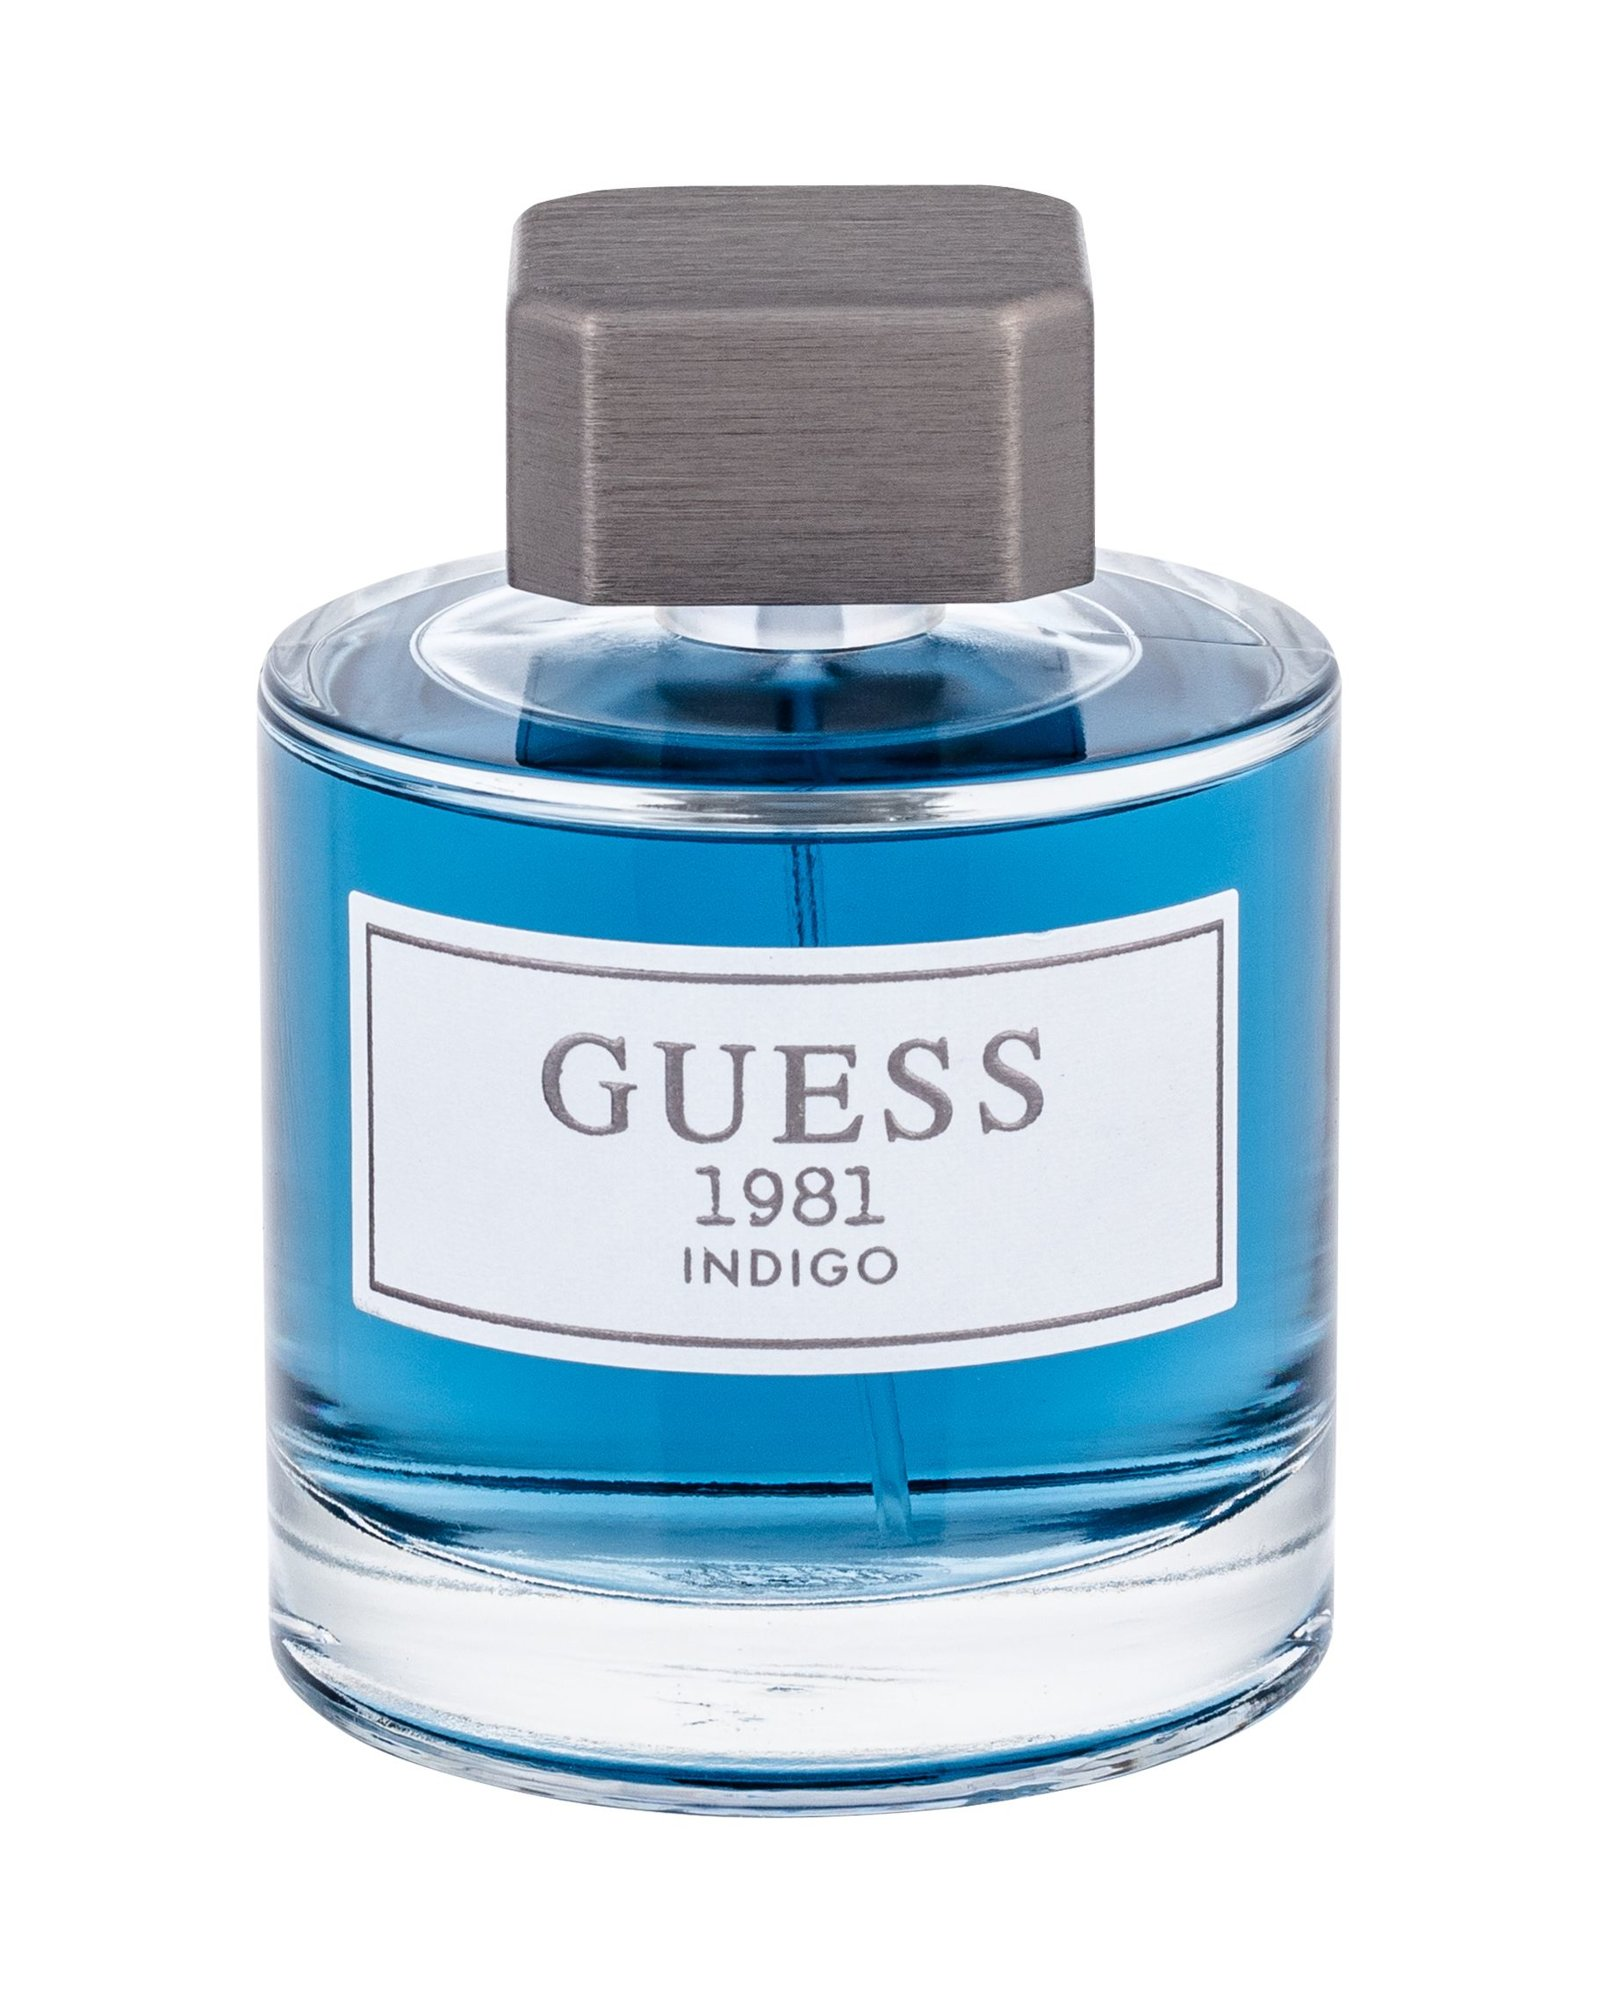 GUESS Guess 1981 Indigo For Men EDT 100ml